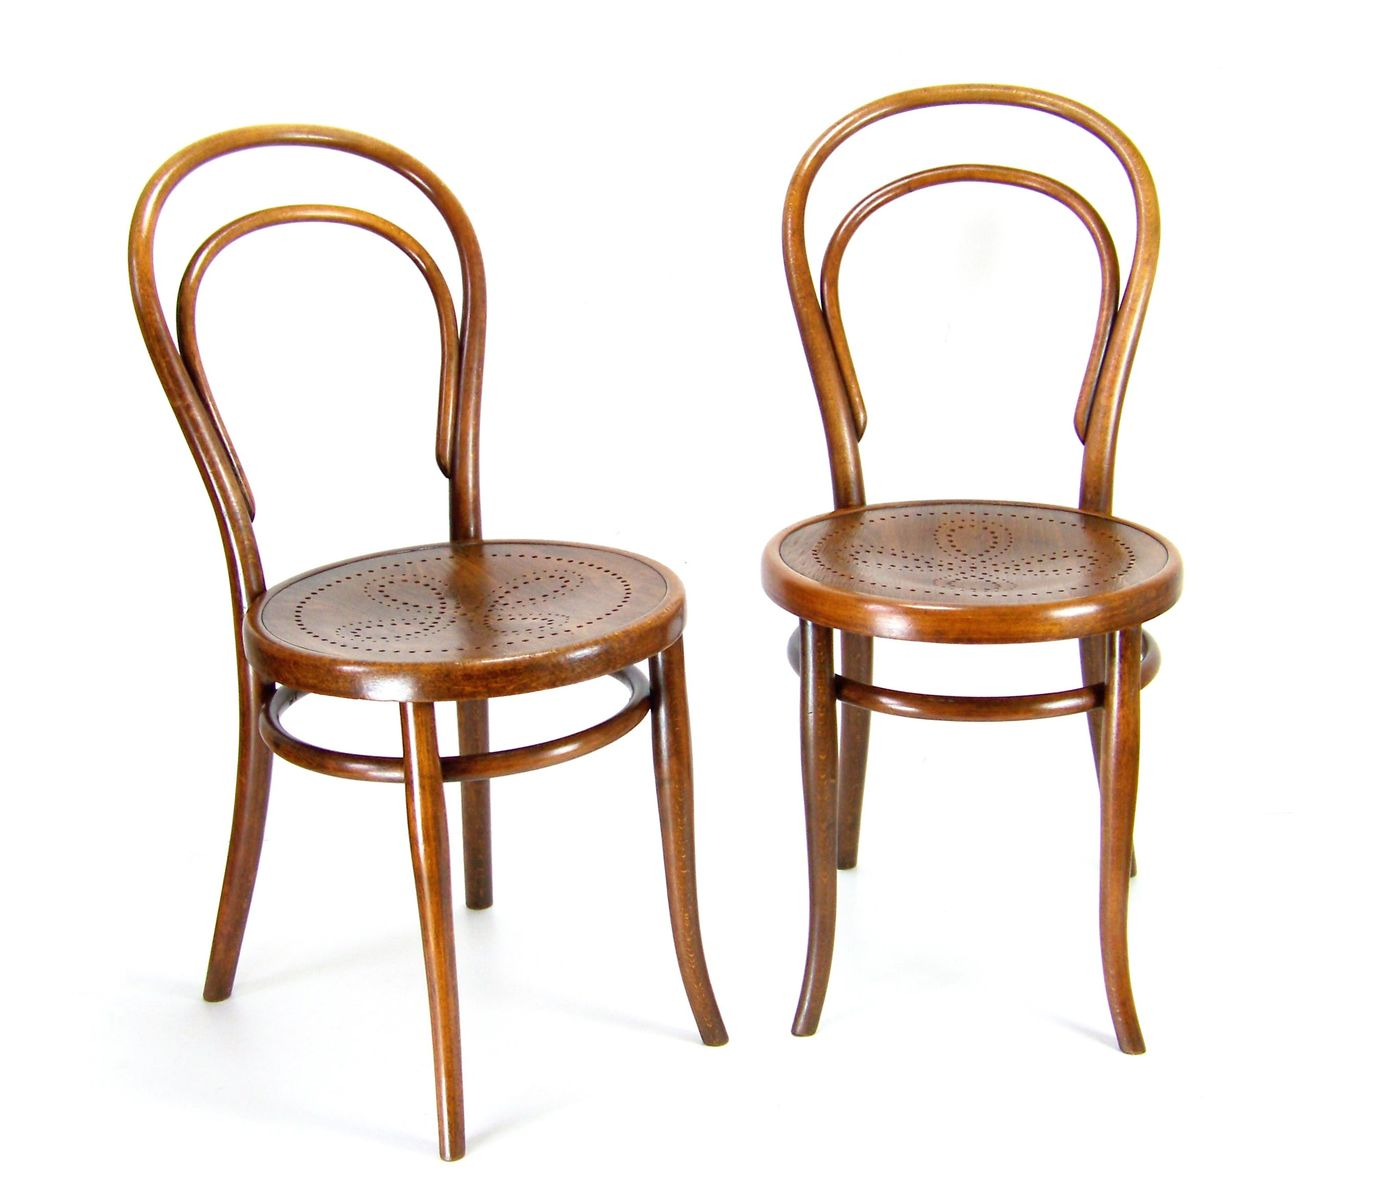 Viennese Nr 14 Chairs From Thonet, 1900s, Set Of 2